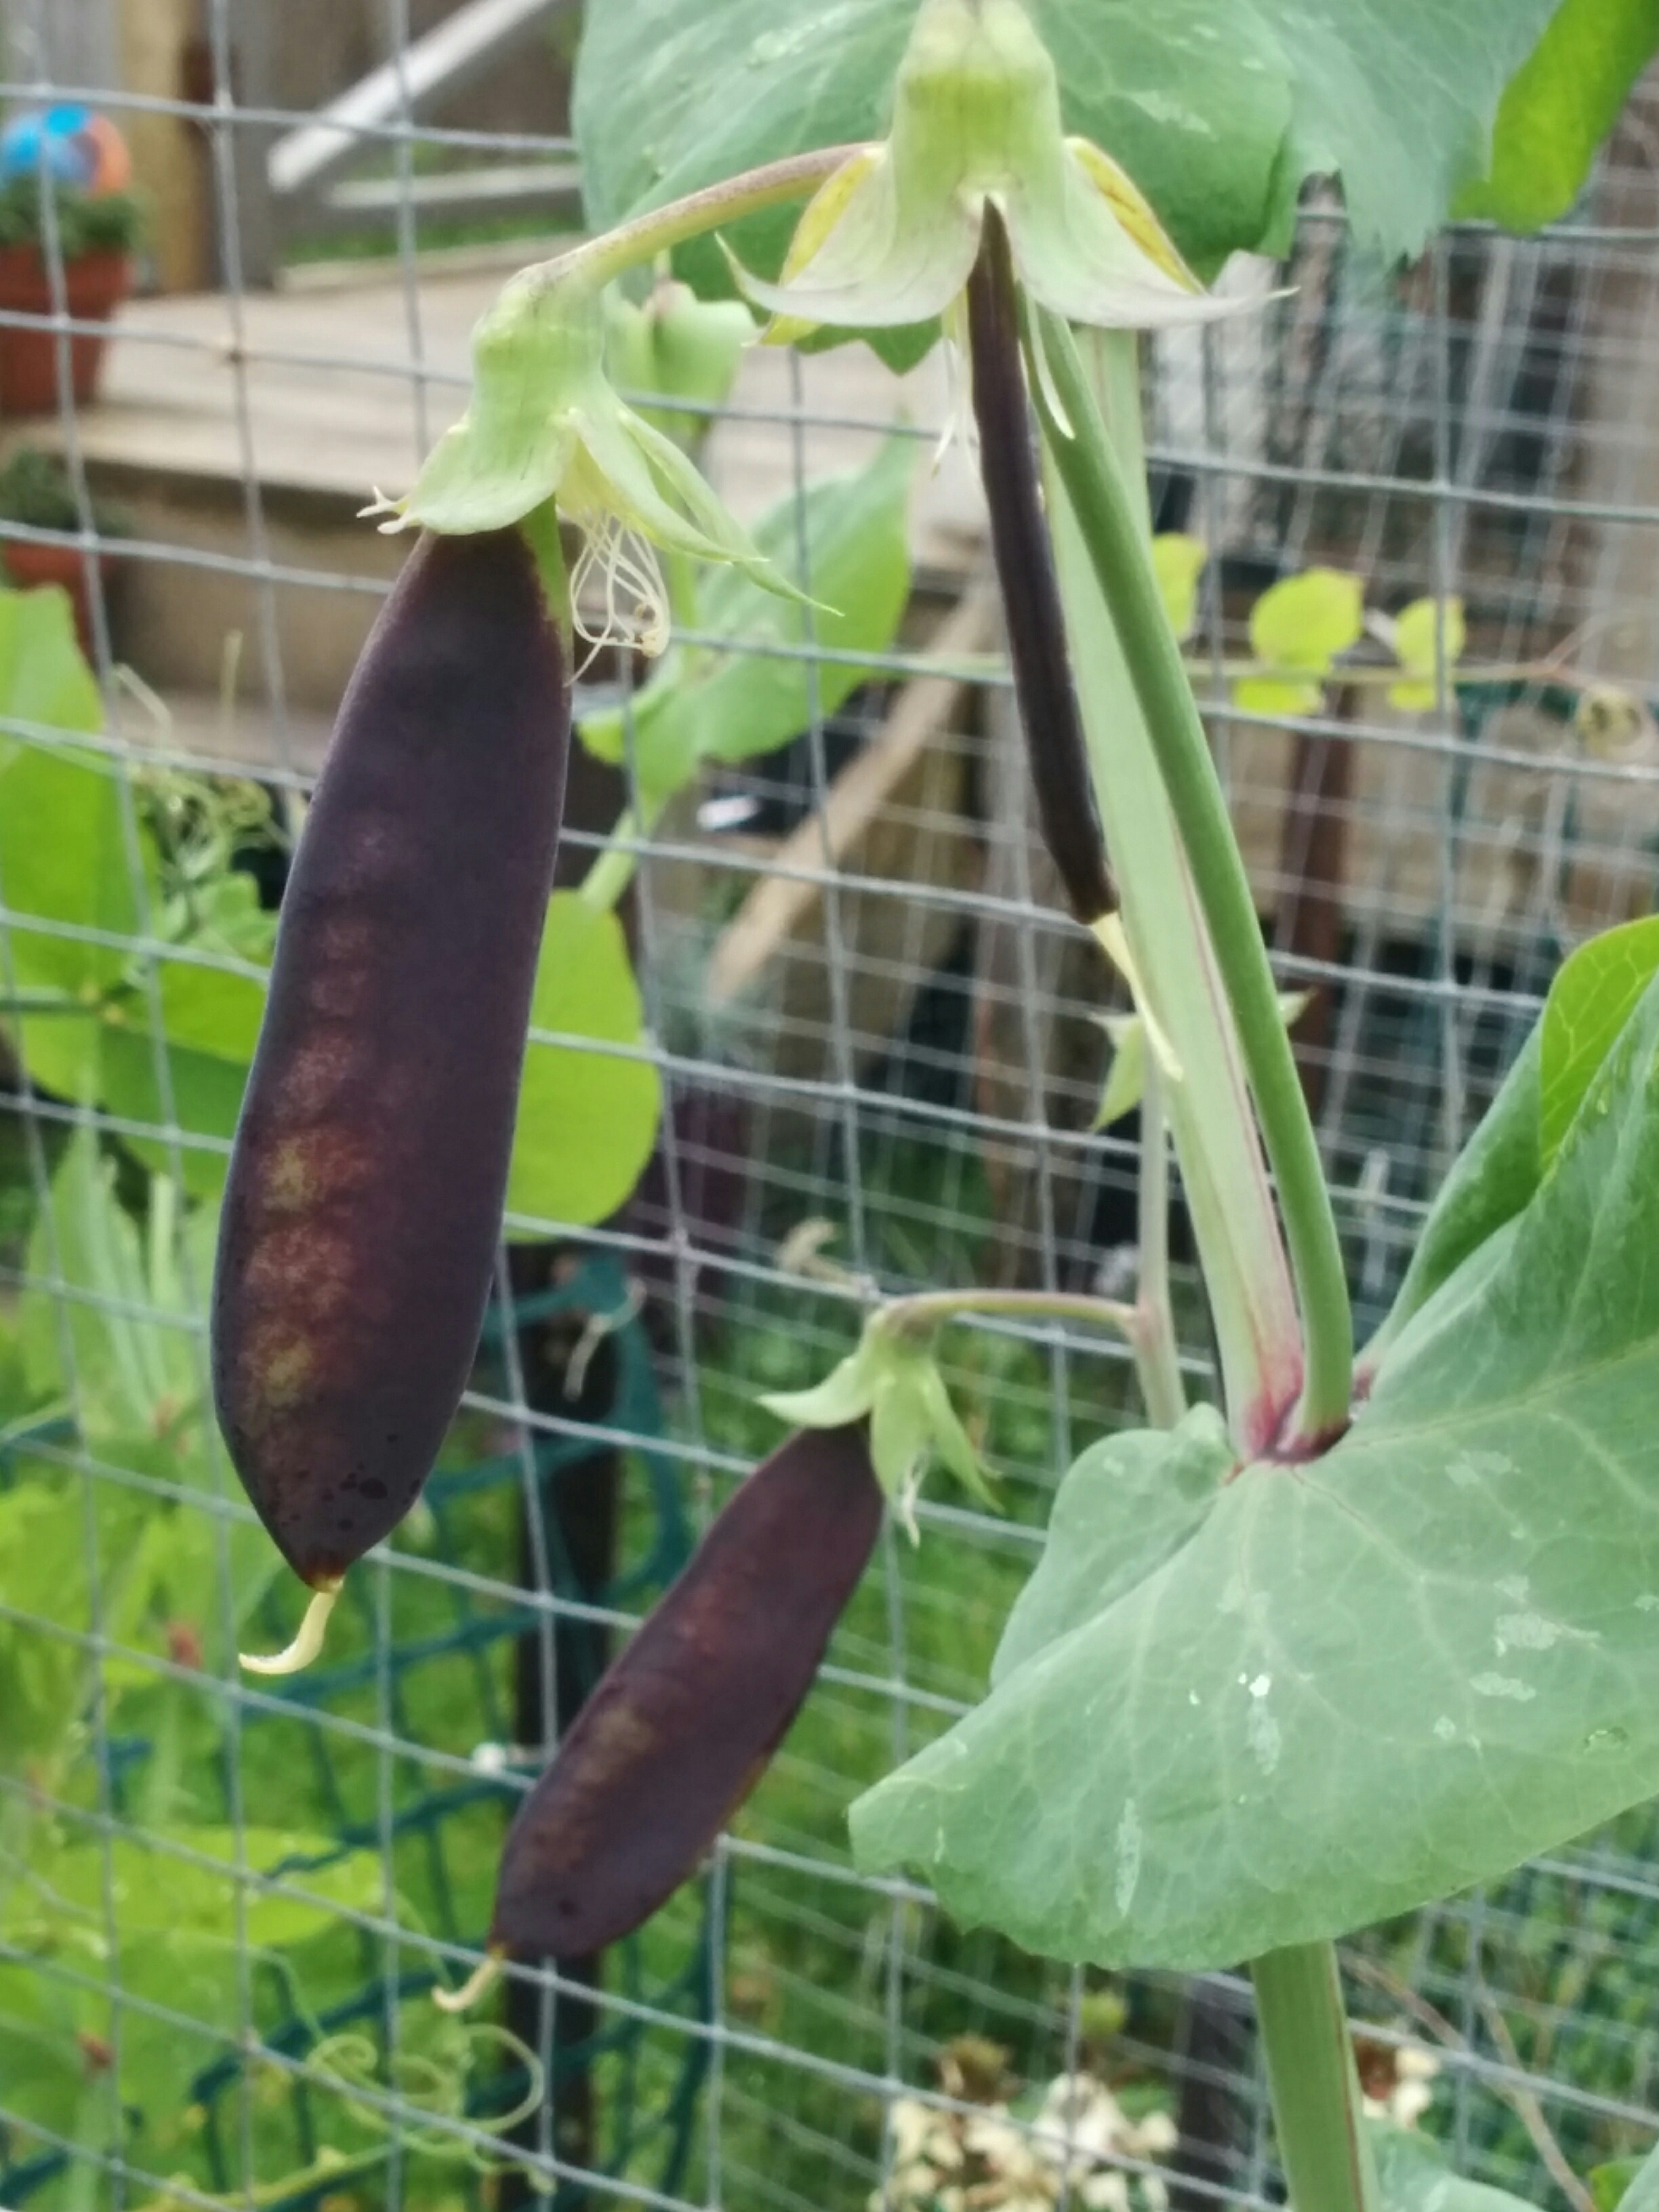 Purple Shelling Peas